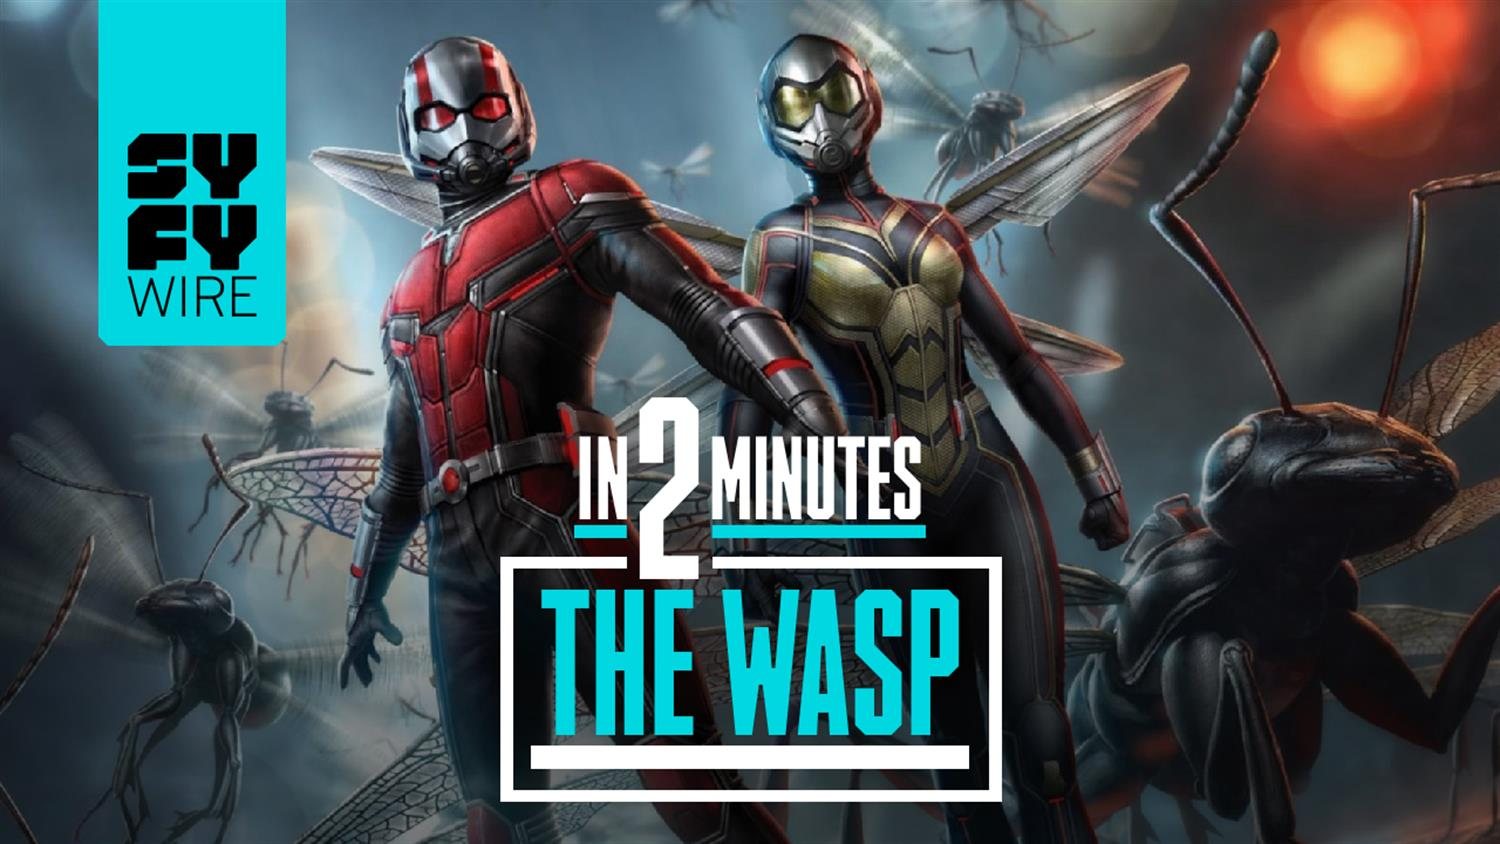 The Wasp In 2 Minutes